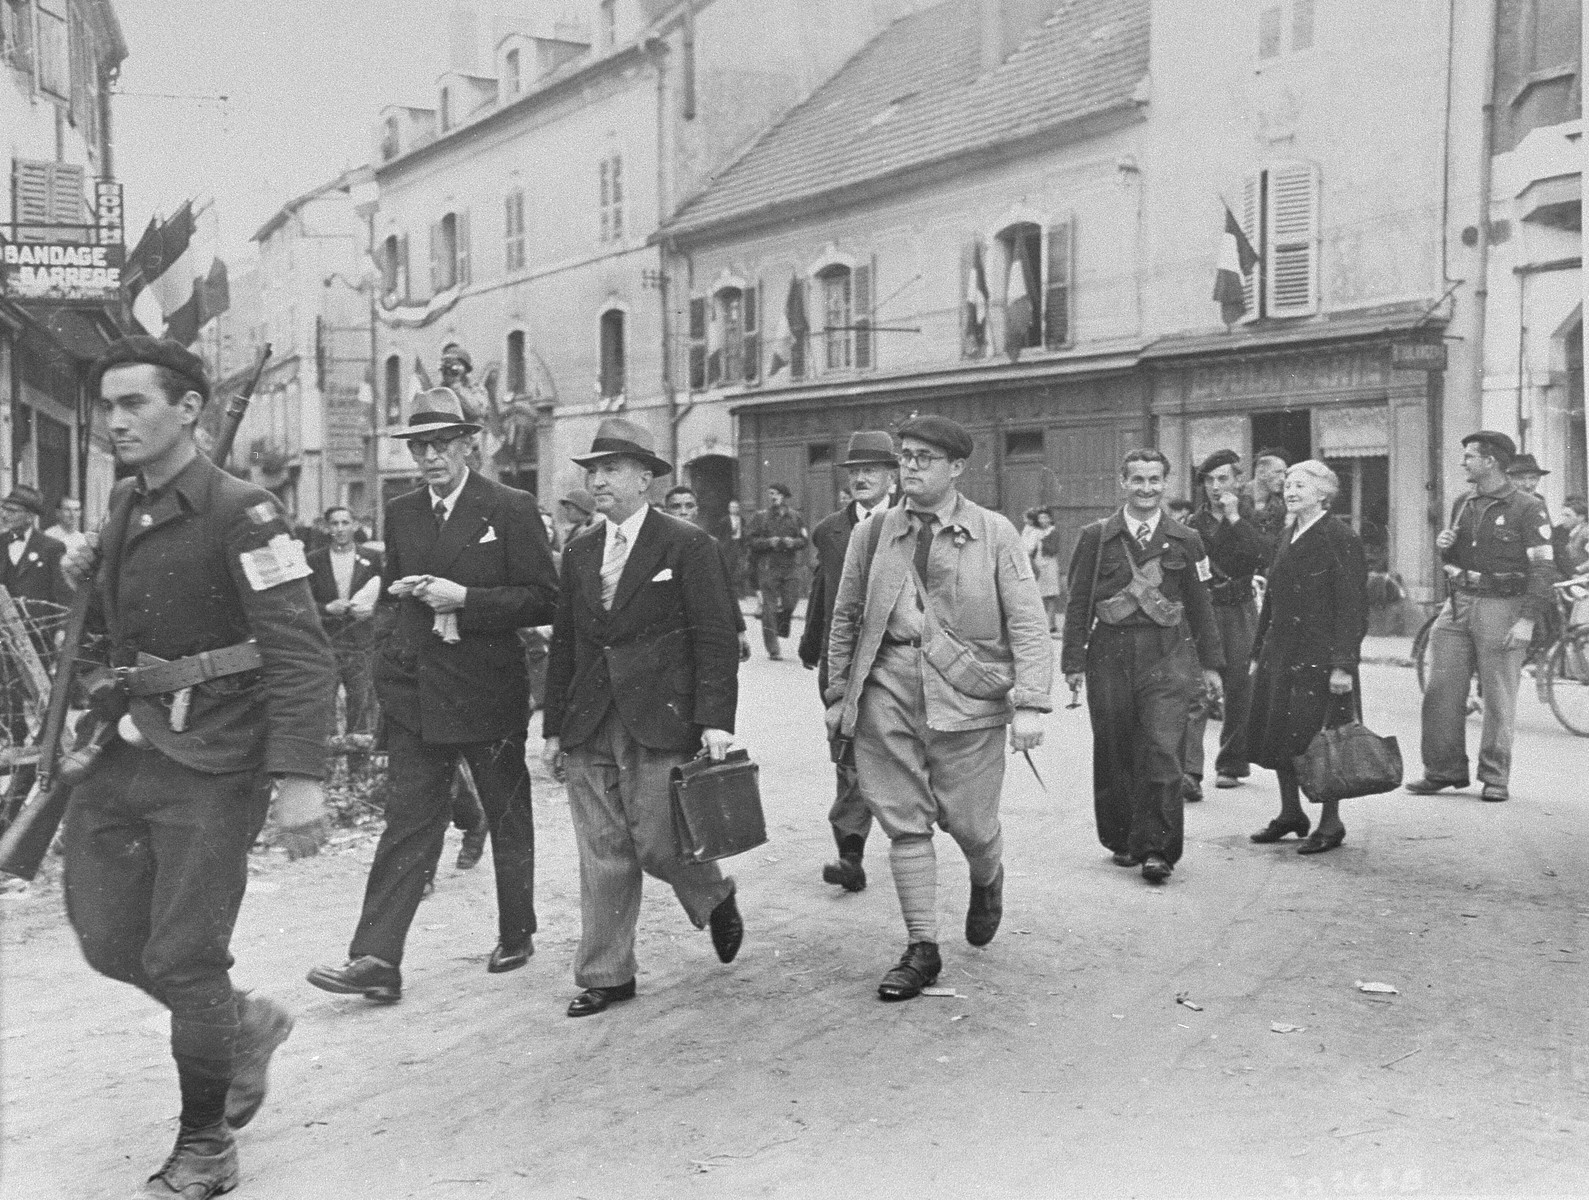 Members of the Free French Forces of the Interior (FFI, Forces Francaises de l'Interieur) lead the Judge and Mayor of Vesoul to prison for collaborating with the Germans.